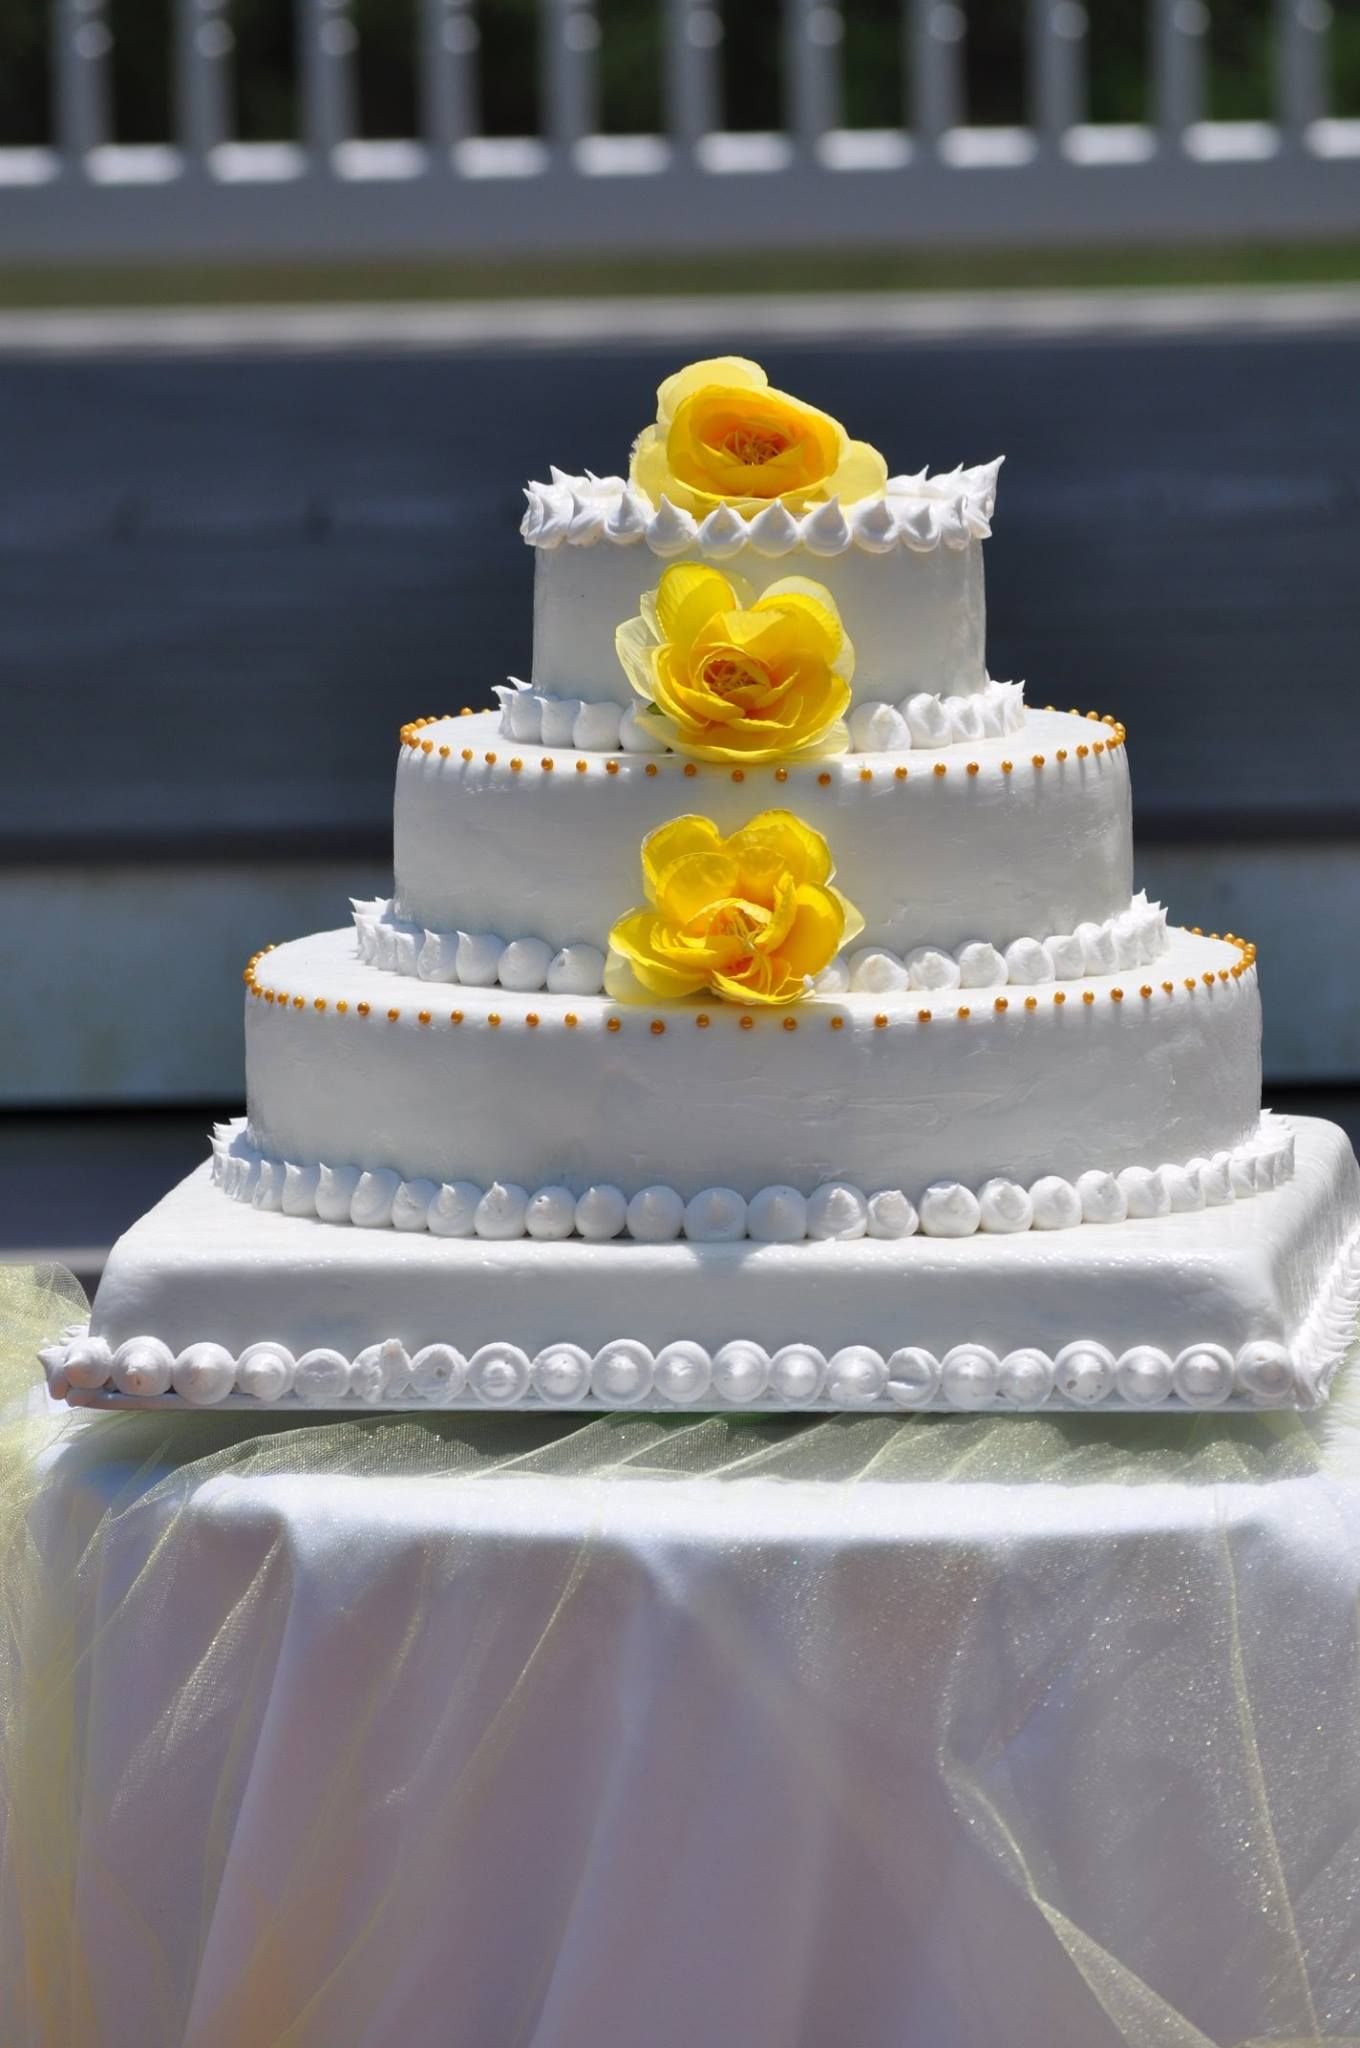 Beaufort Weddings Yellow And White Cake Made By Traditions Catering Aboard Mcrd Parris Island In